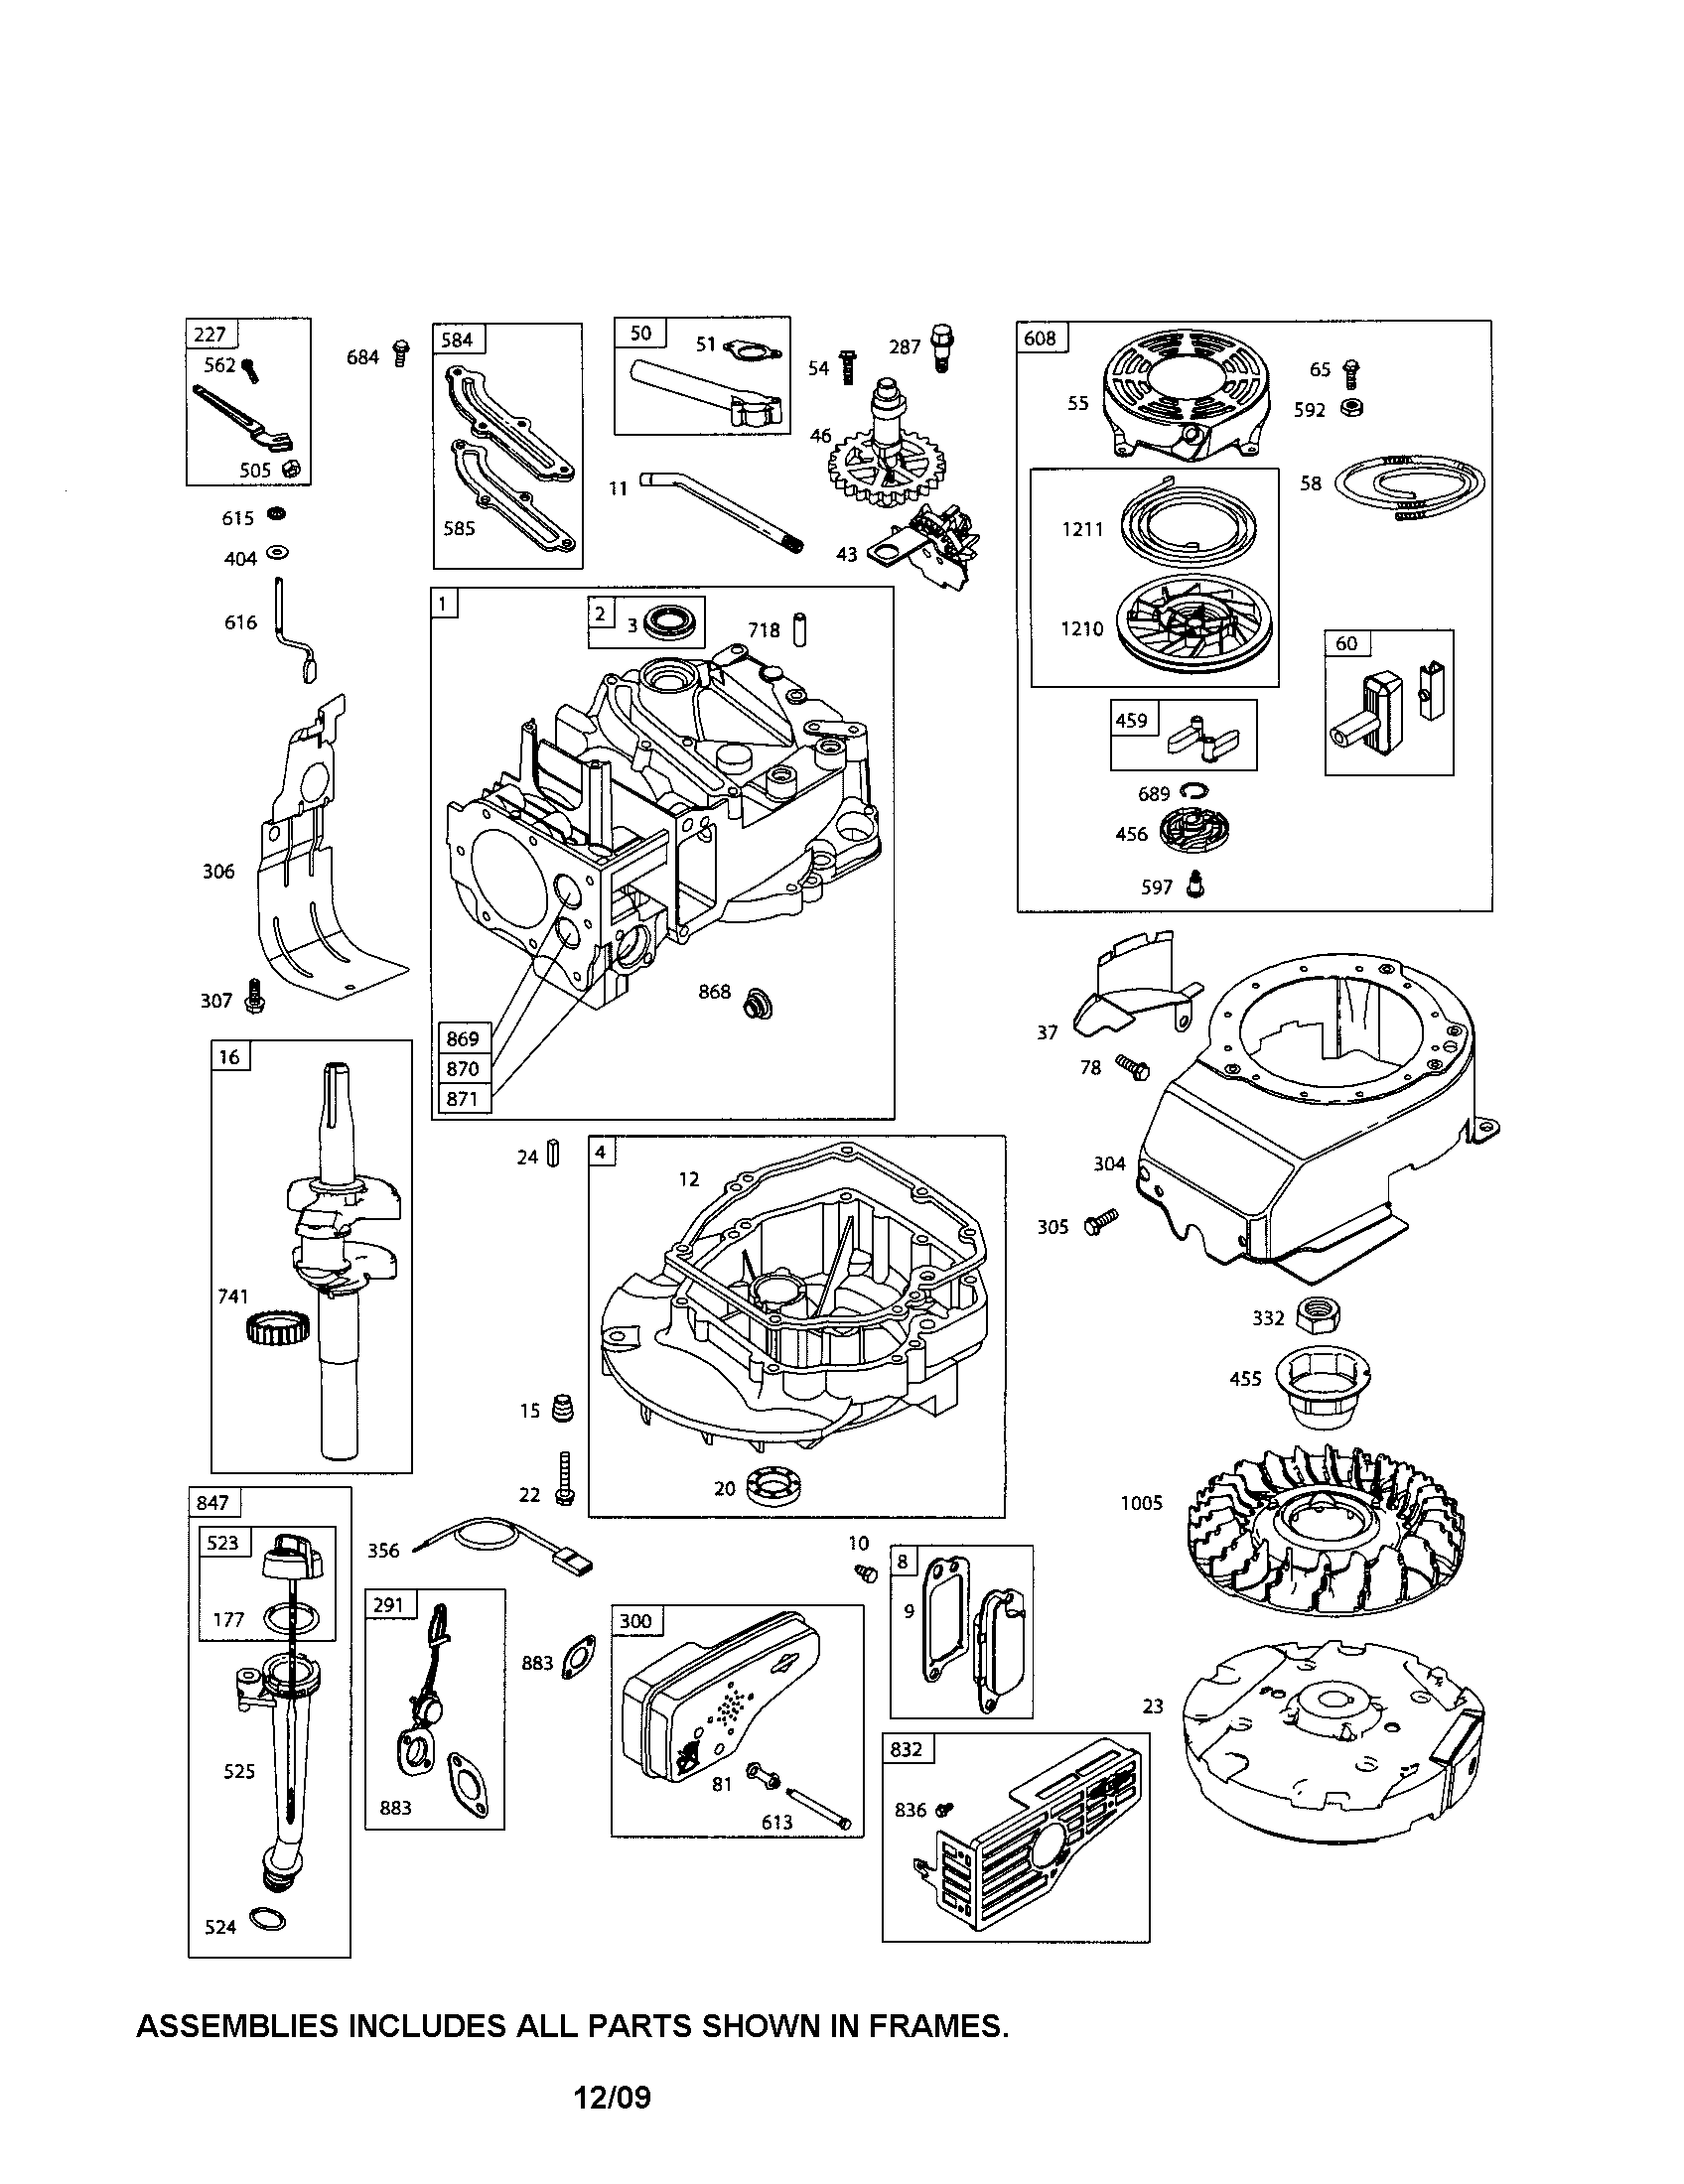 Briggs And Stratton Engine Number Location